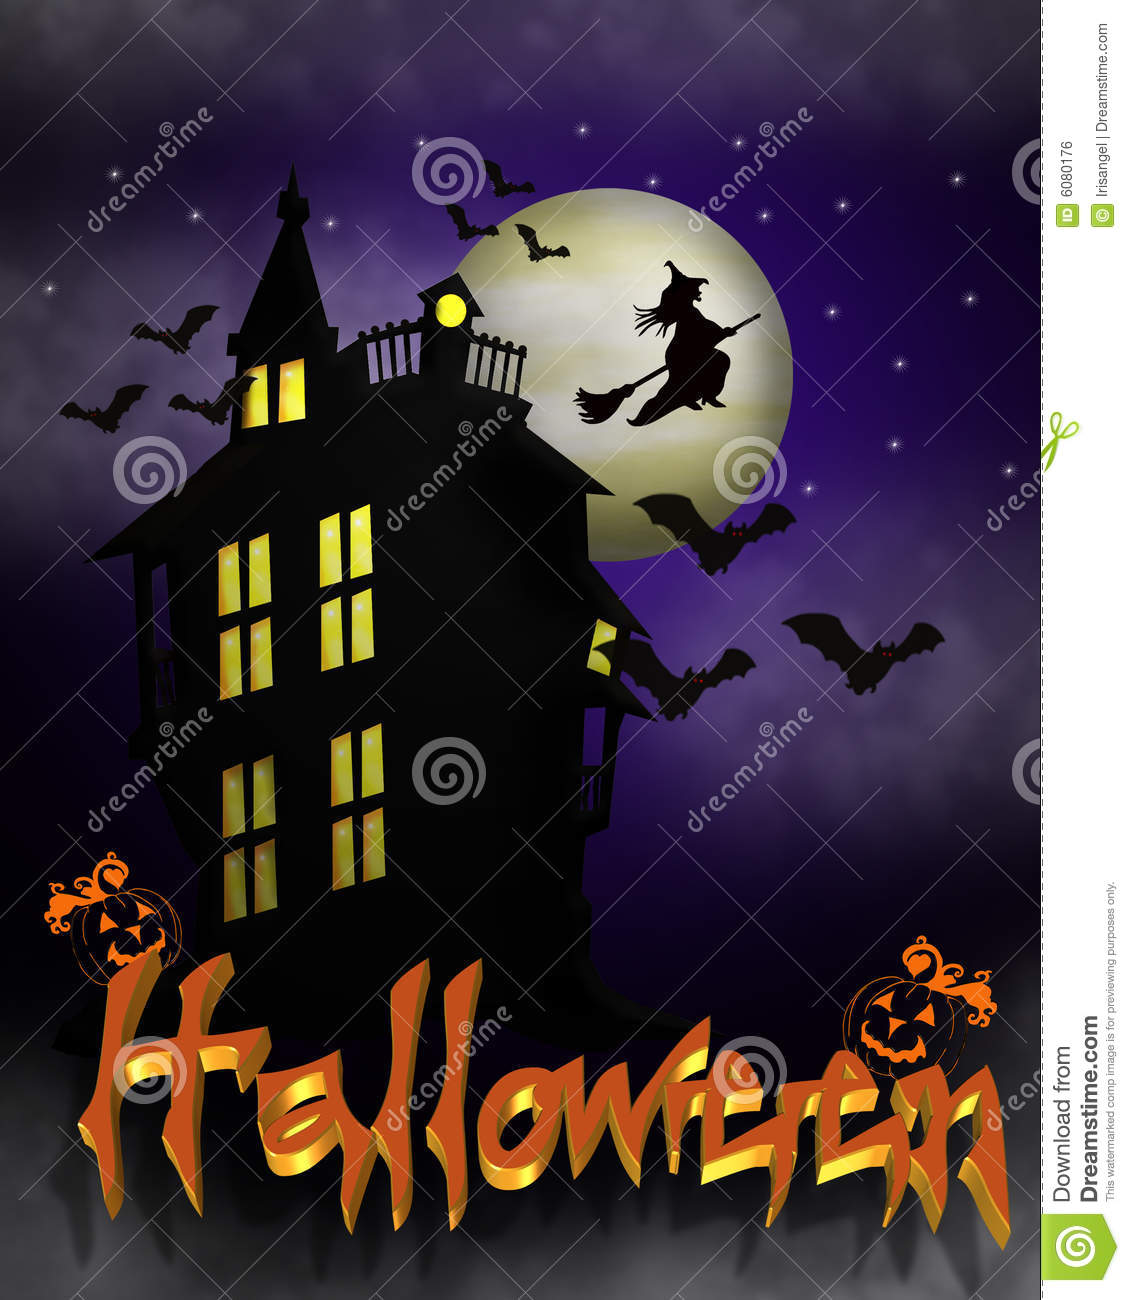 Halloween Haunted House Background Royalty Free Stock